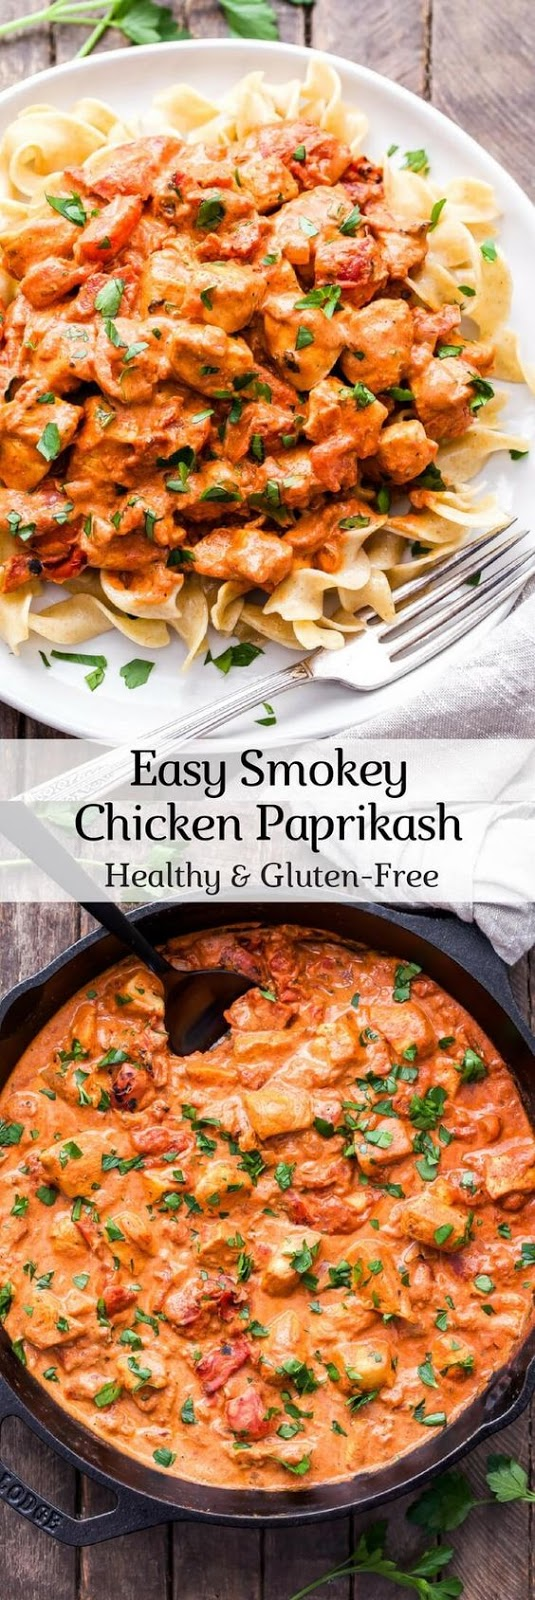 Easy Smokey Chicken Paprikash